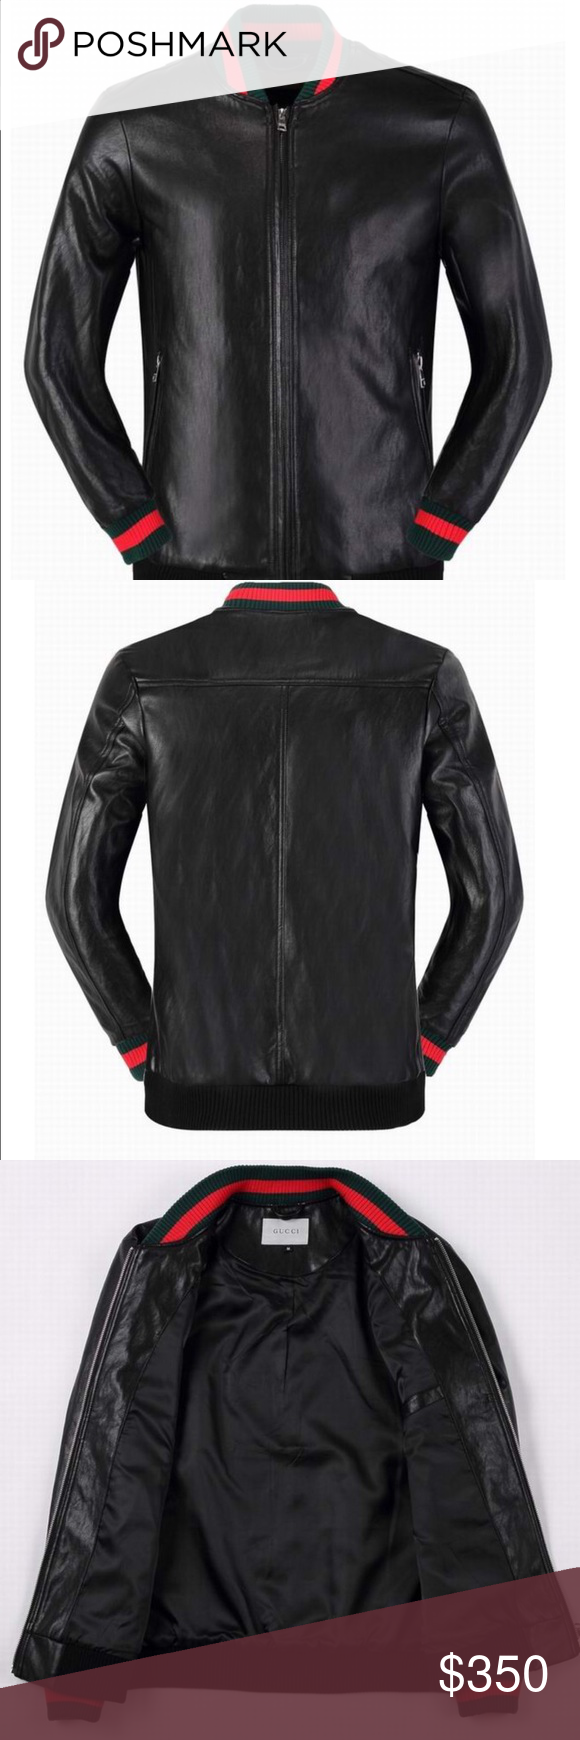 Gucci leather jacket Great simple gucci leather jacket